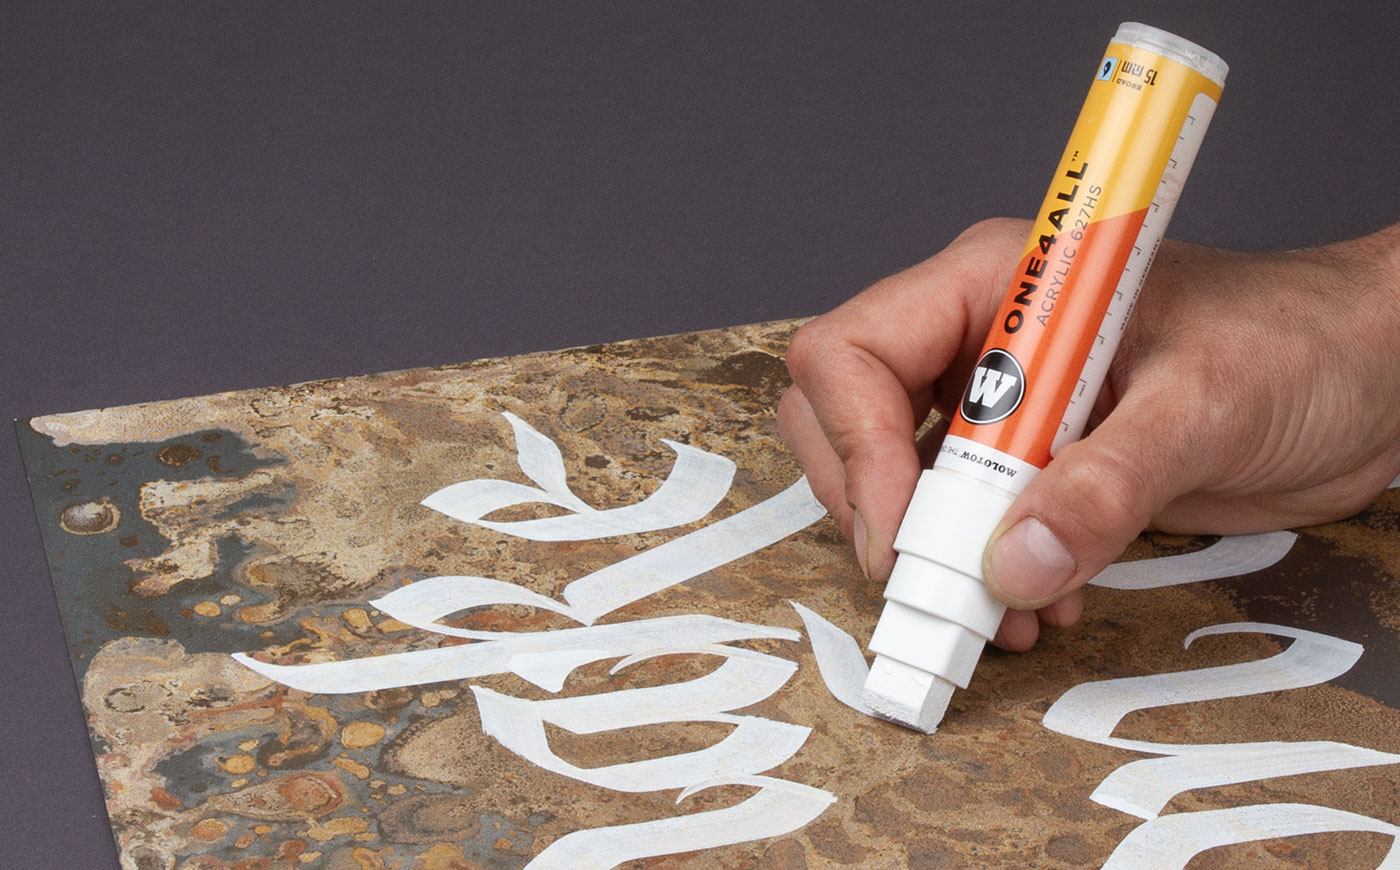 ONE4ALL™ ACRYLIC MARKER SYSTEM